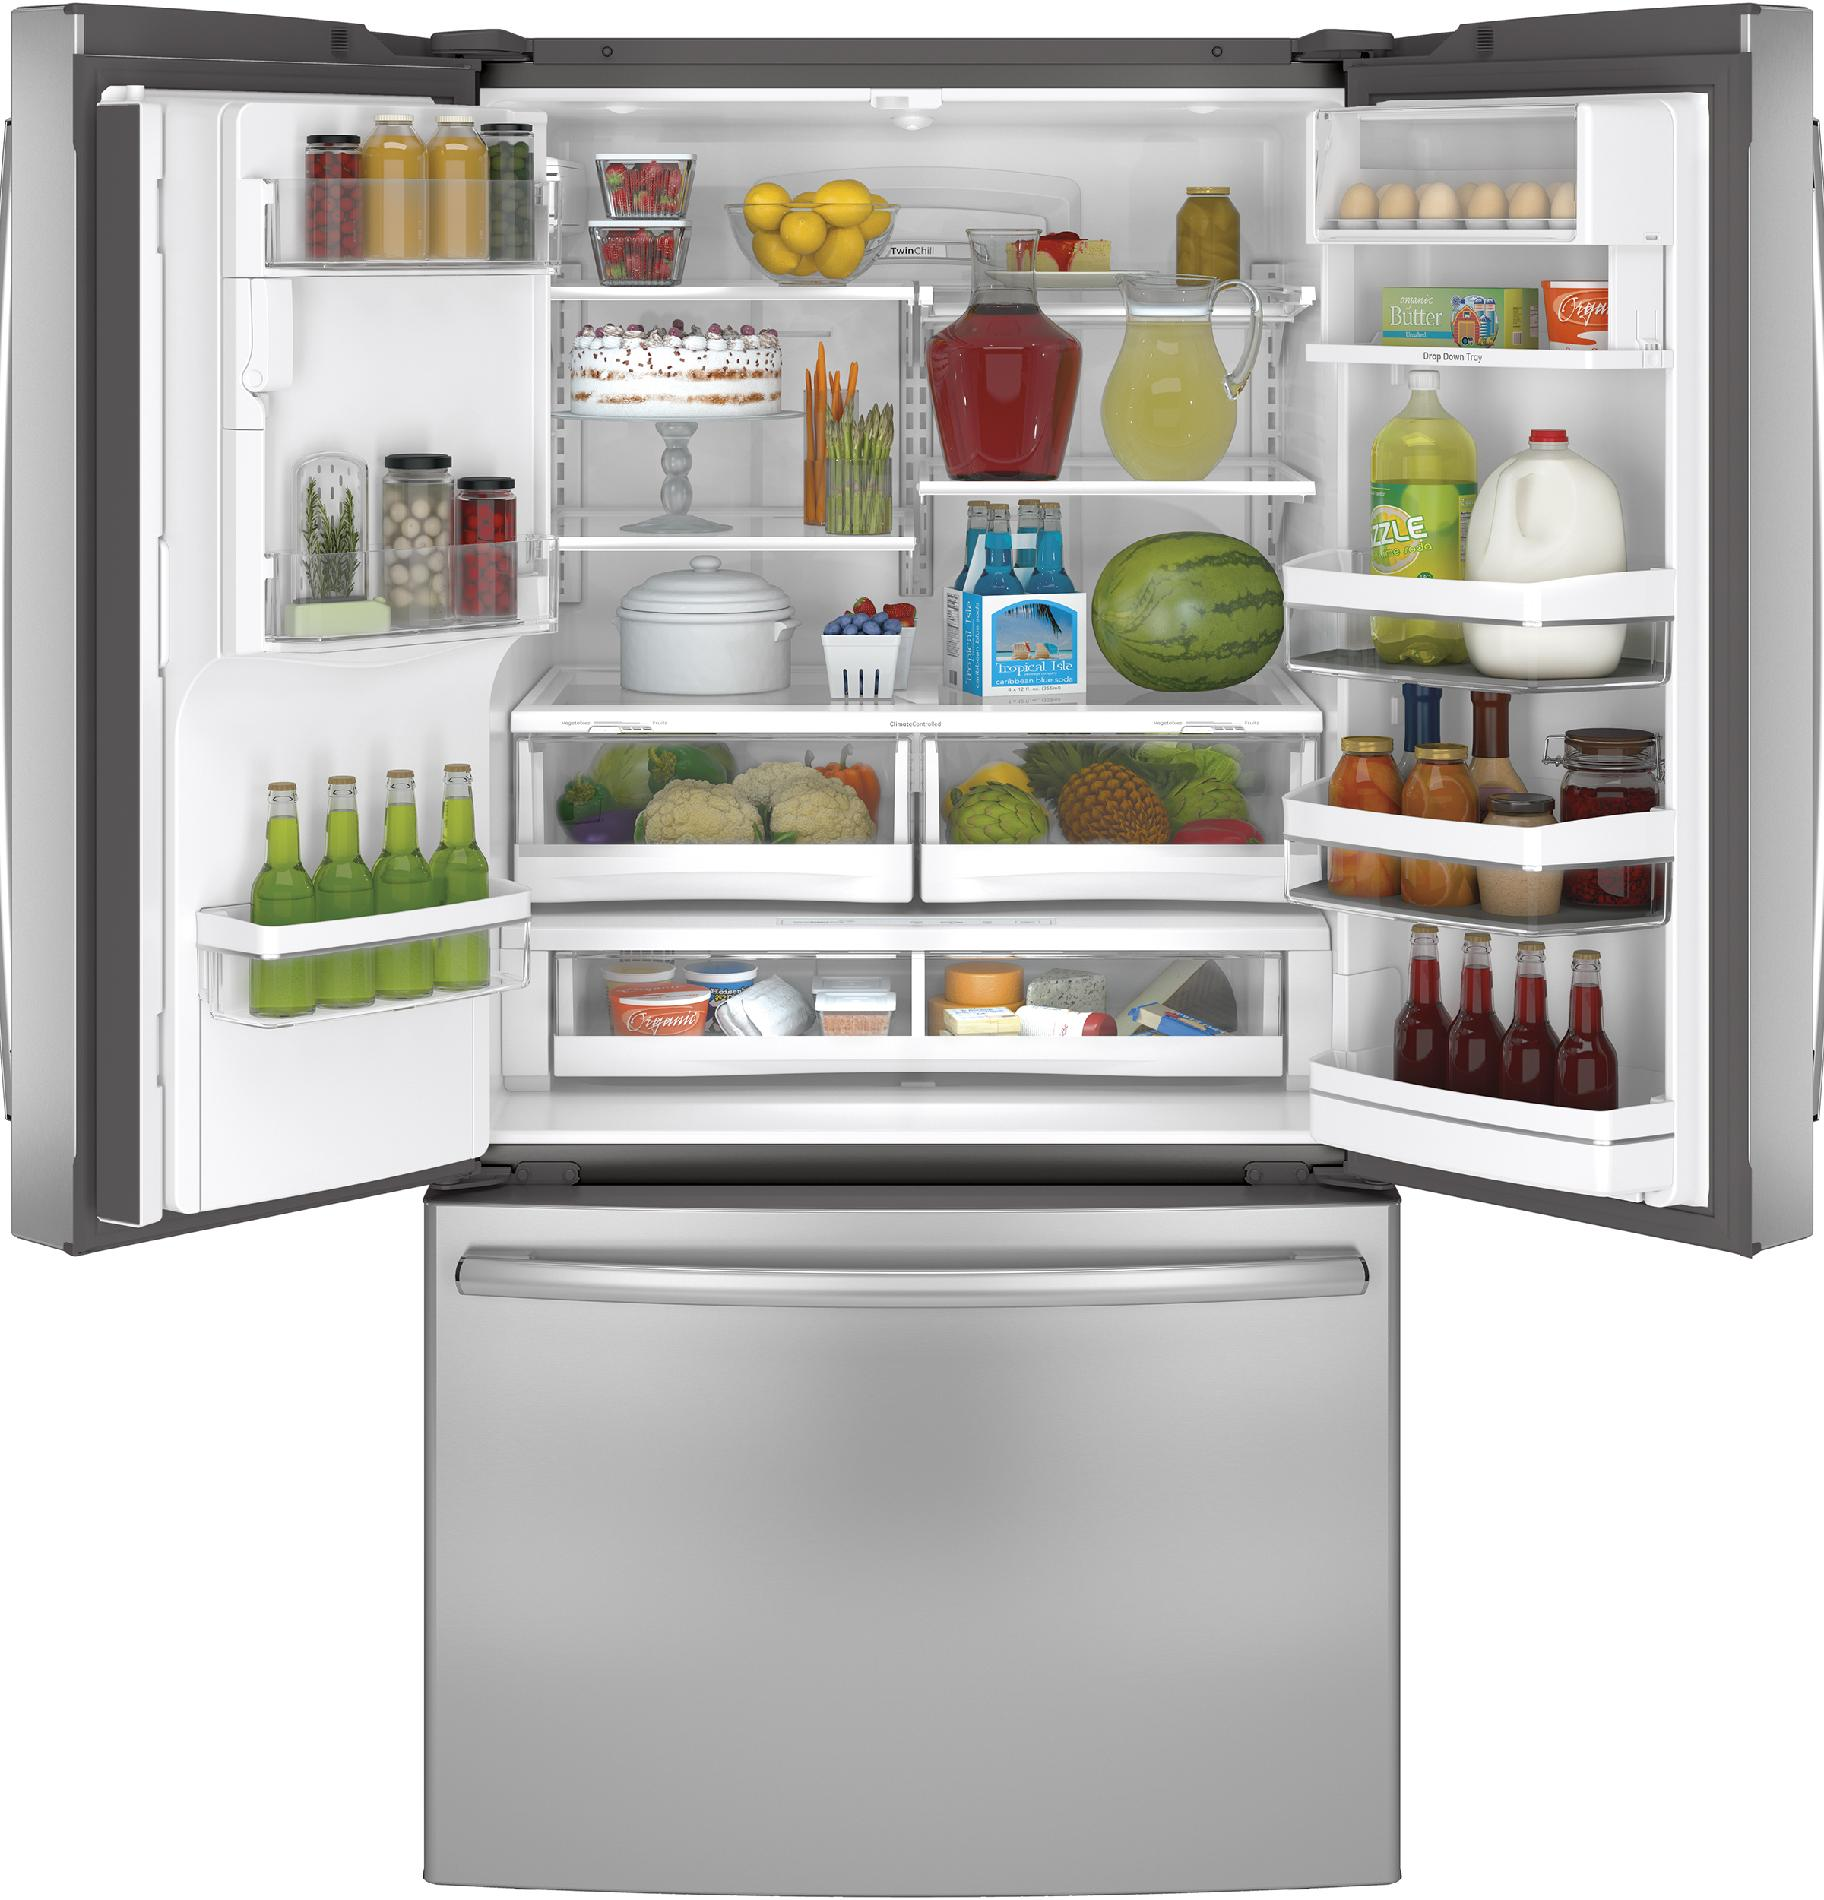 GE Profile PFE28RSHSS 27.7 cu. ft. French-Door Ice & Water Refrigerator - Stainless Steel